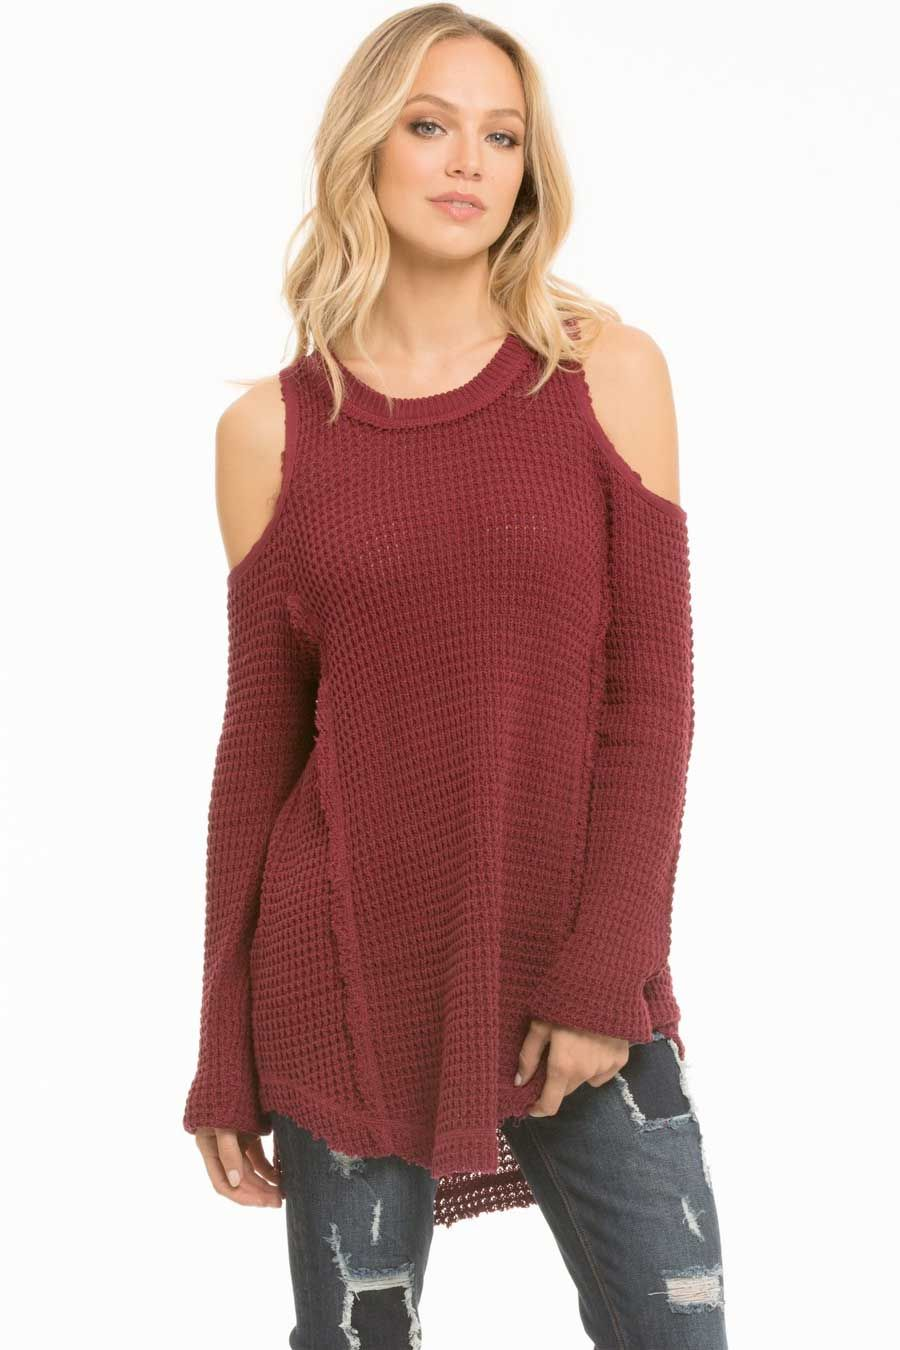 1e5717a240 Elan Clothing Cold Shoulder Sweater in Burgundy   my style   Fashion ...